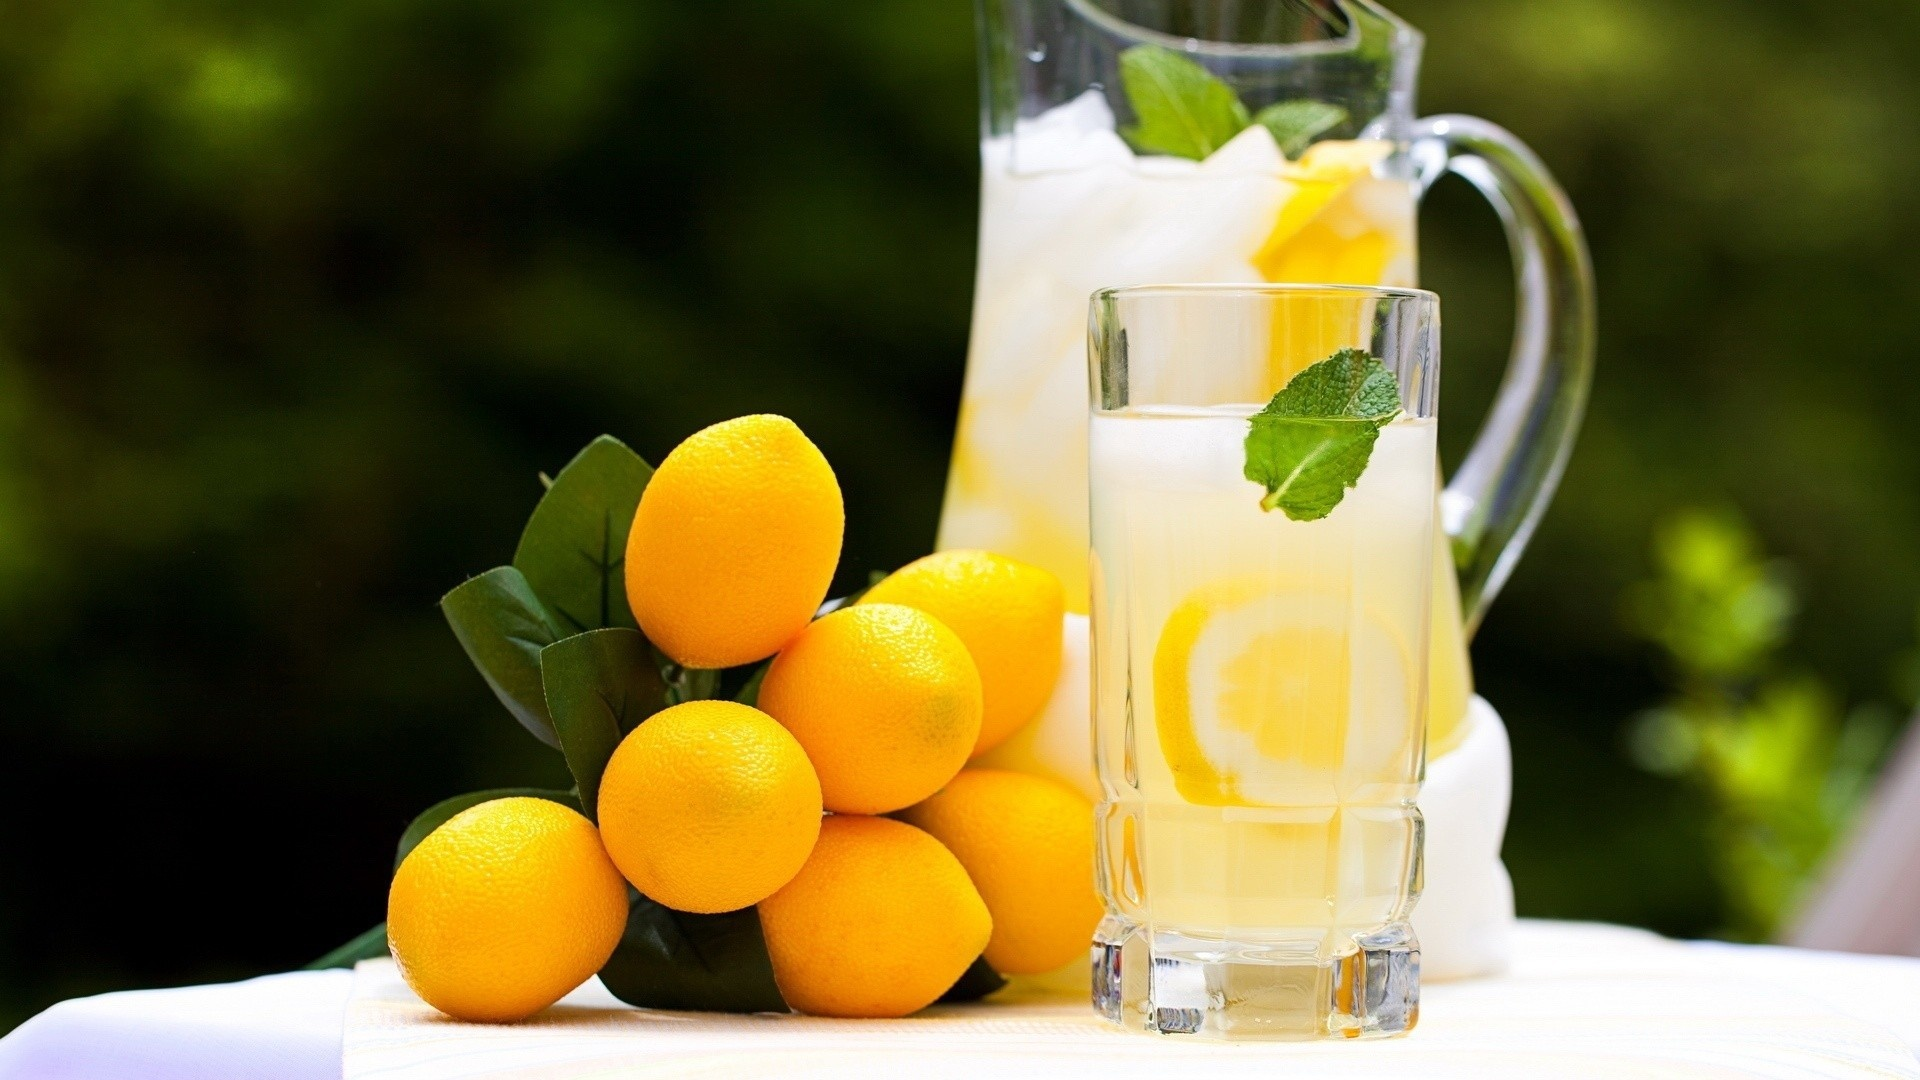 """Download the following Fresh Lemonade Wallpaper 1475 by clicking the button positioned underneath the """"Download Wallpaper"""" section."""